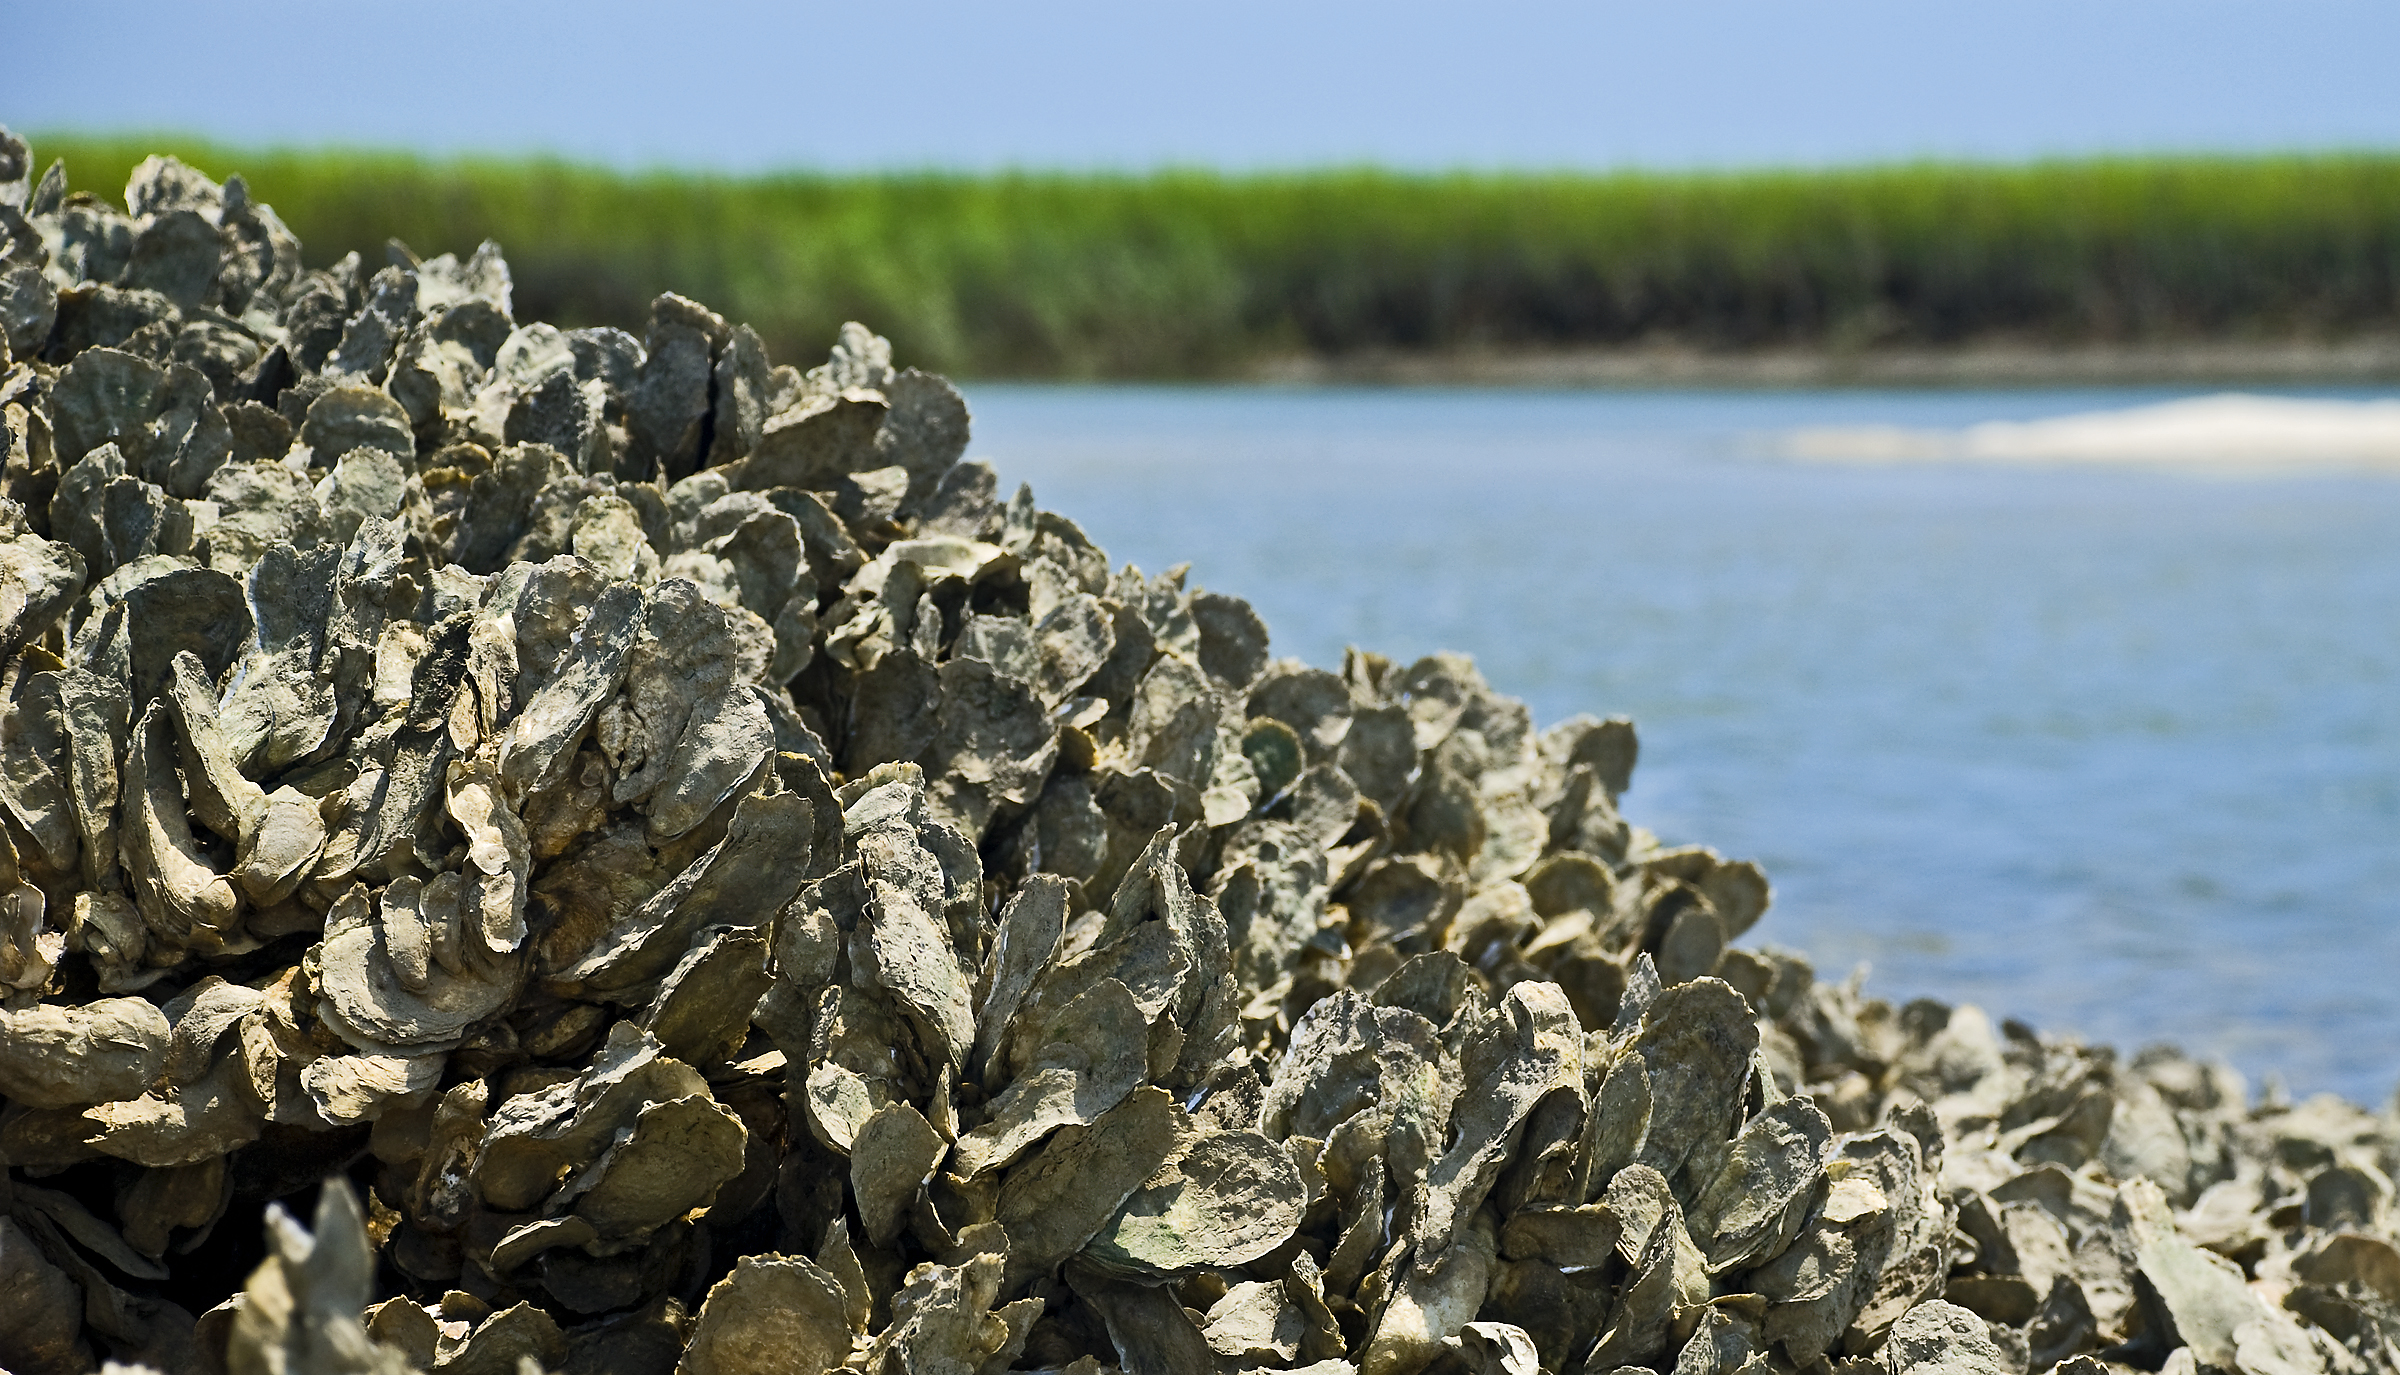 Disbelief over state plan to spray neurotoxin into oyster beds